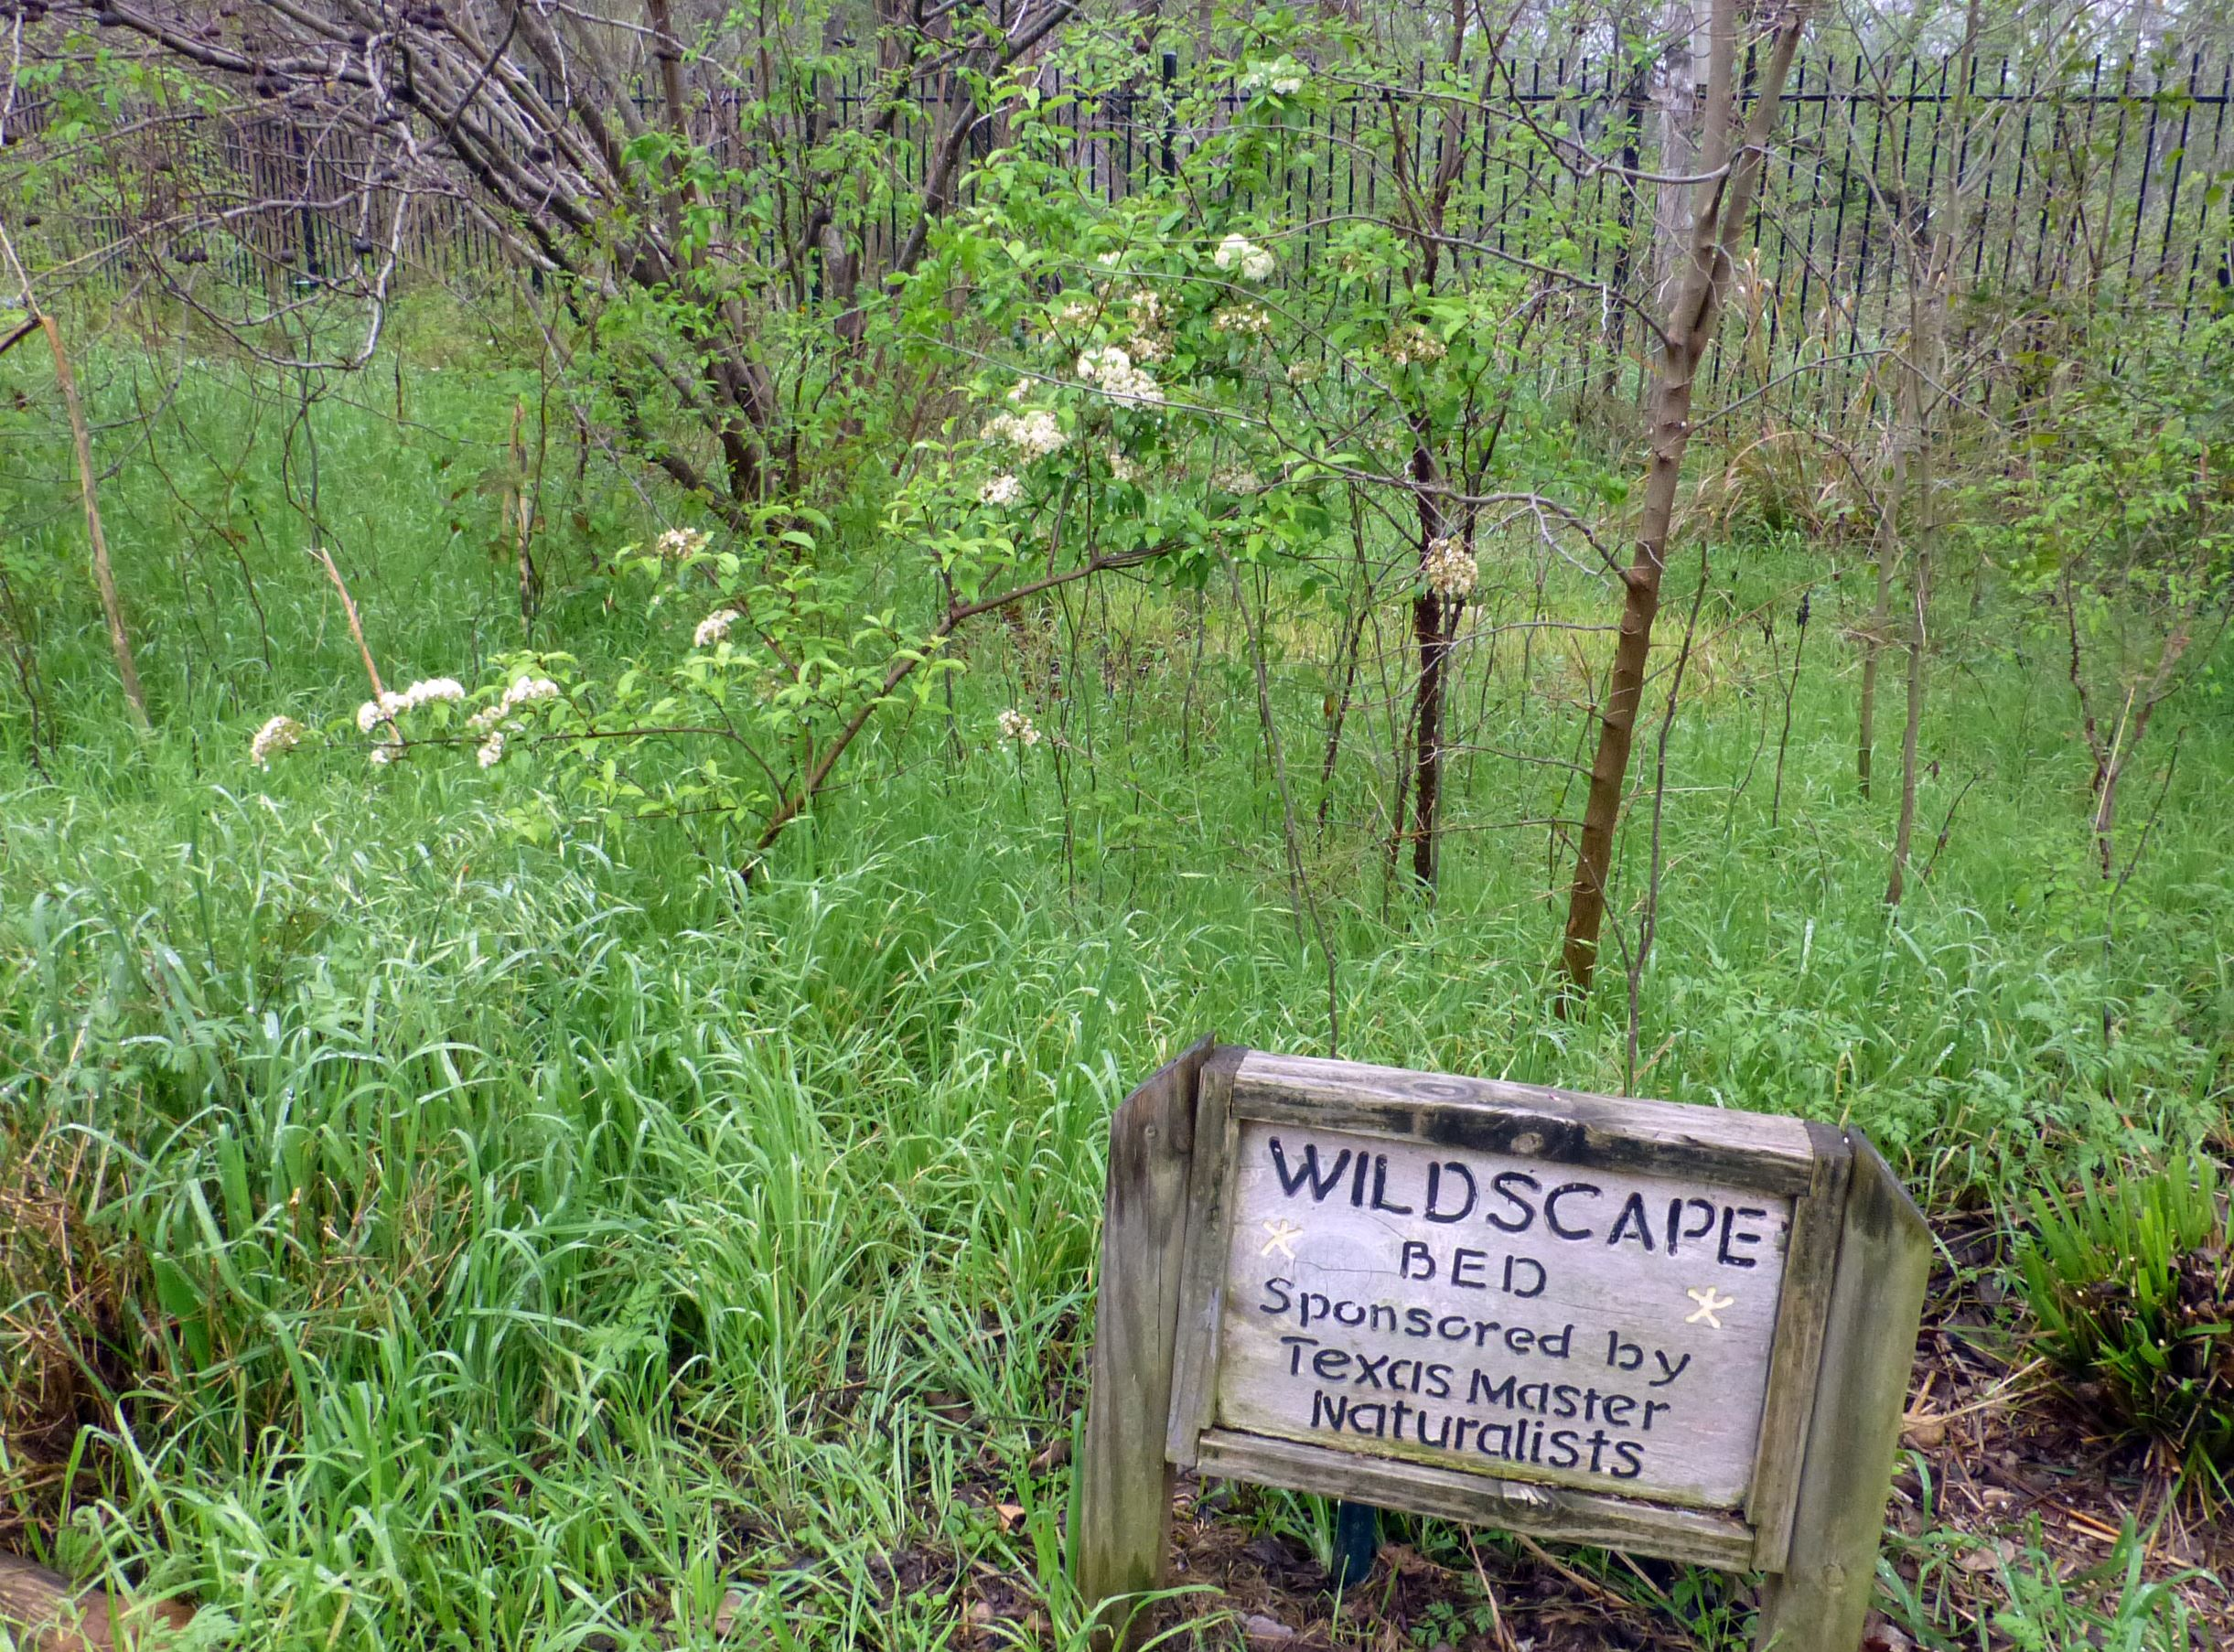 Wildscape bed sponsored by Texas Master Naturalists